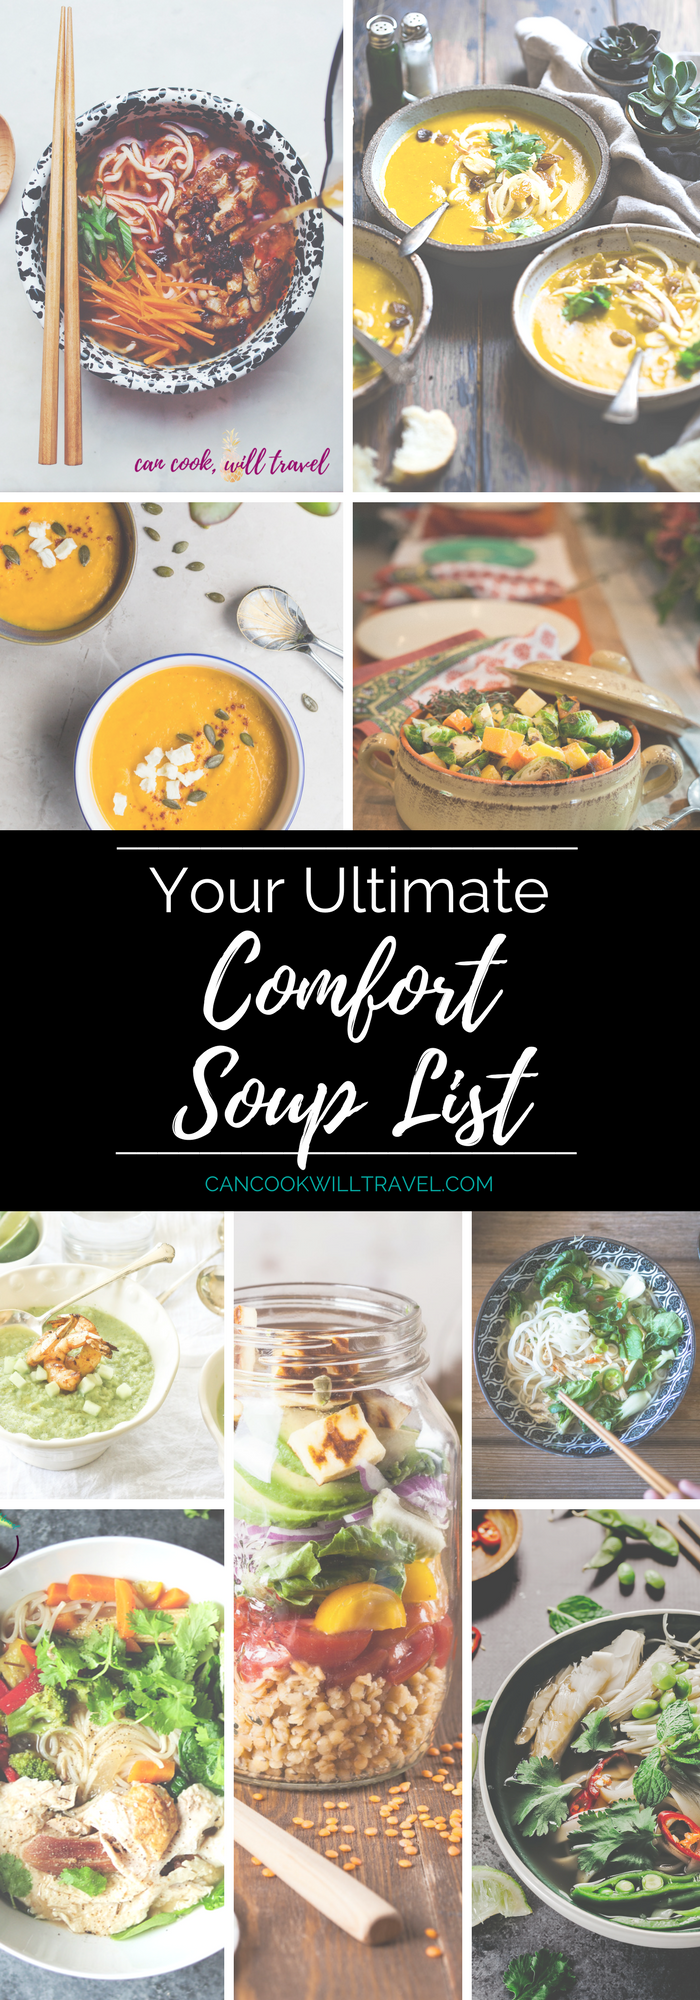 Ultimate Comfort Soup List_Tall